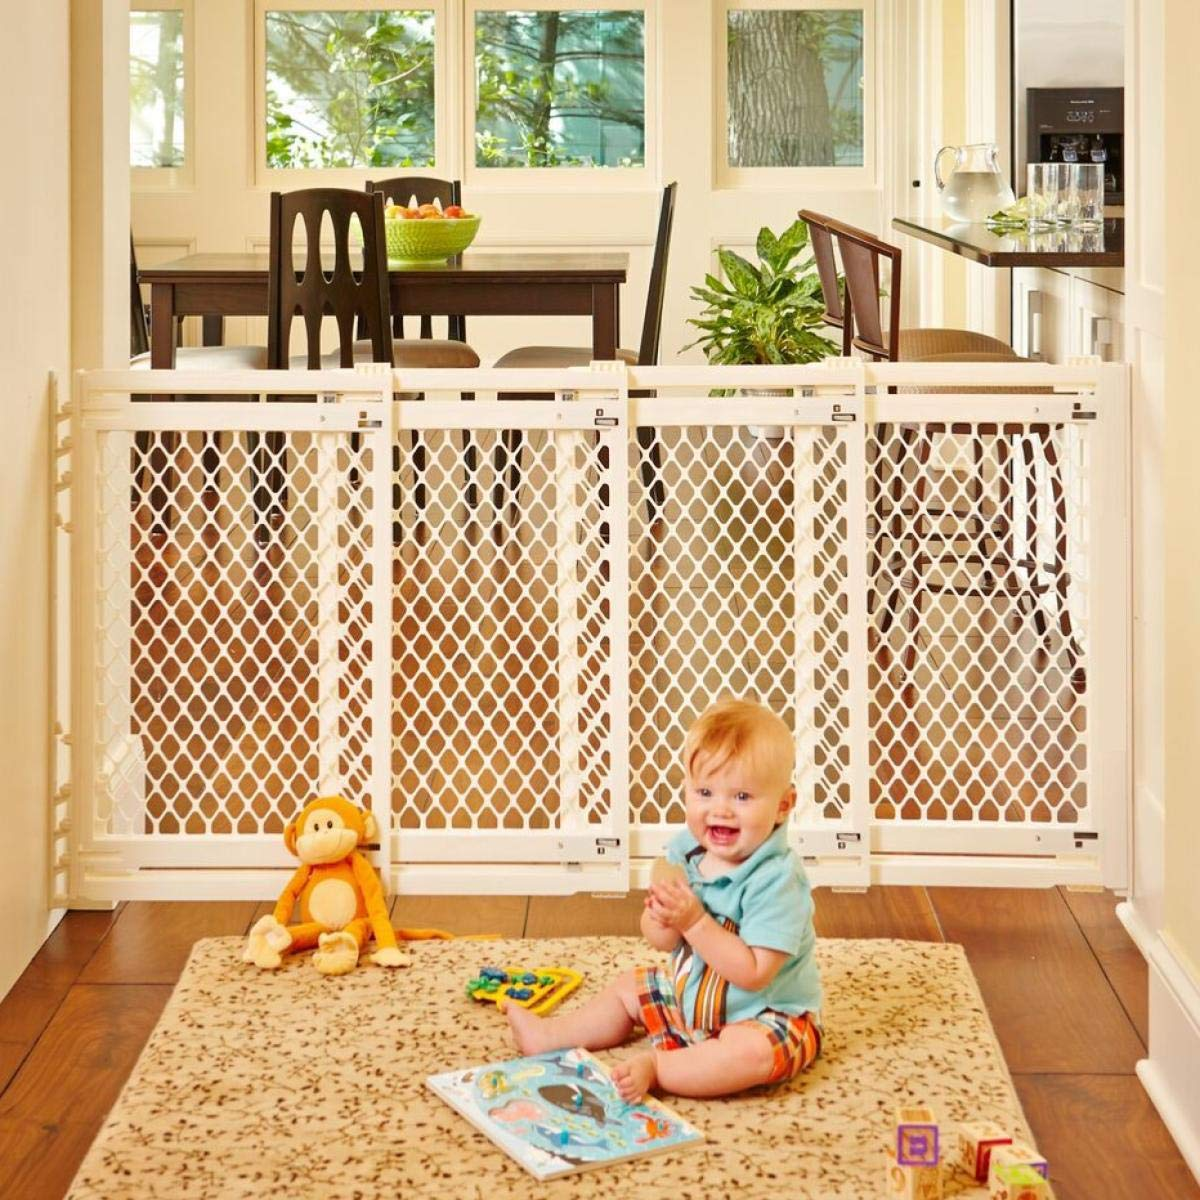 North States 62'' Wide Extra-Wide Baby Gate: Smoothly Opens and Closes in Extra-Wide Spaces. Hardware Mount. Fits 22''-62'' Wide (31'' Tall, Ivory)